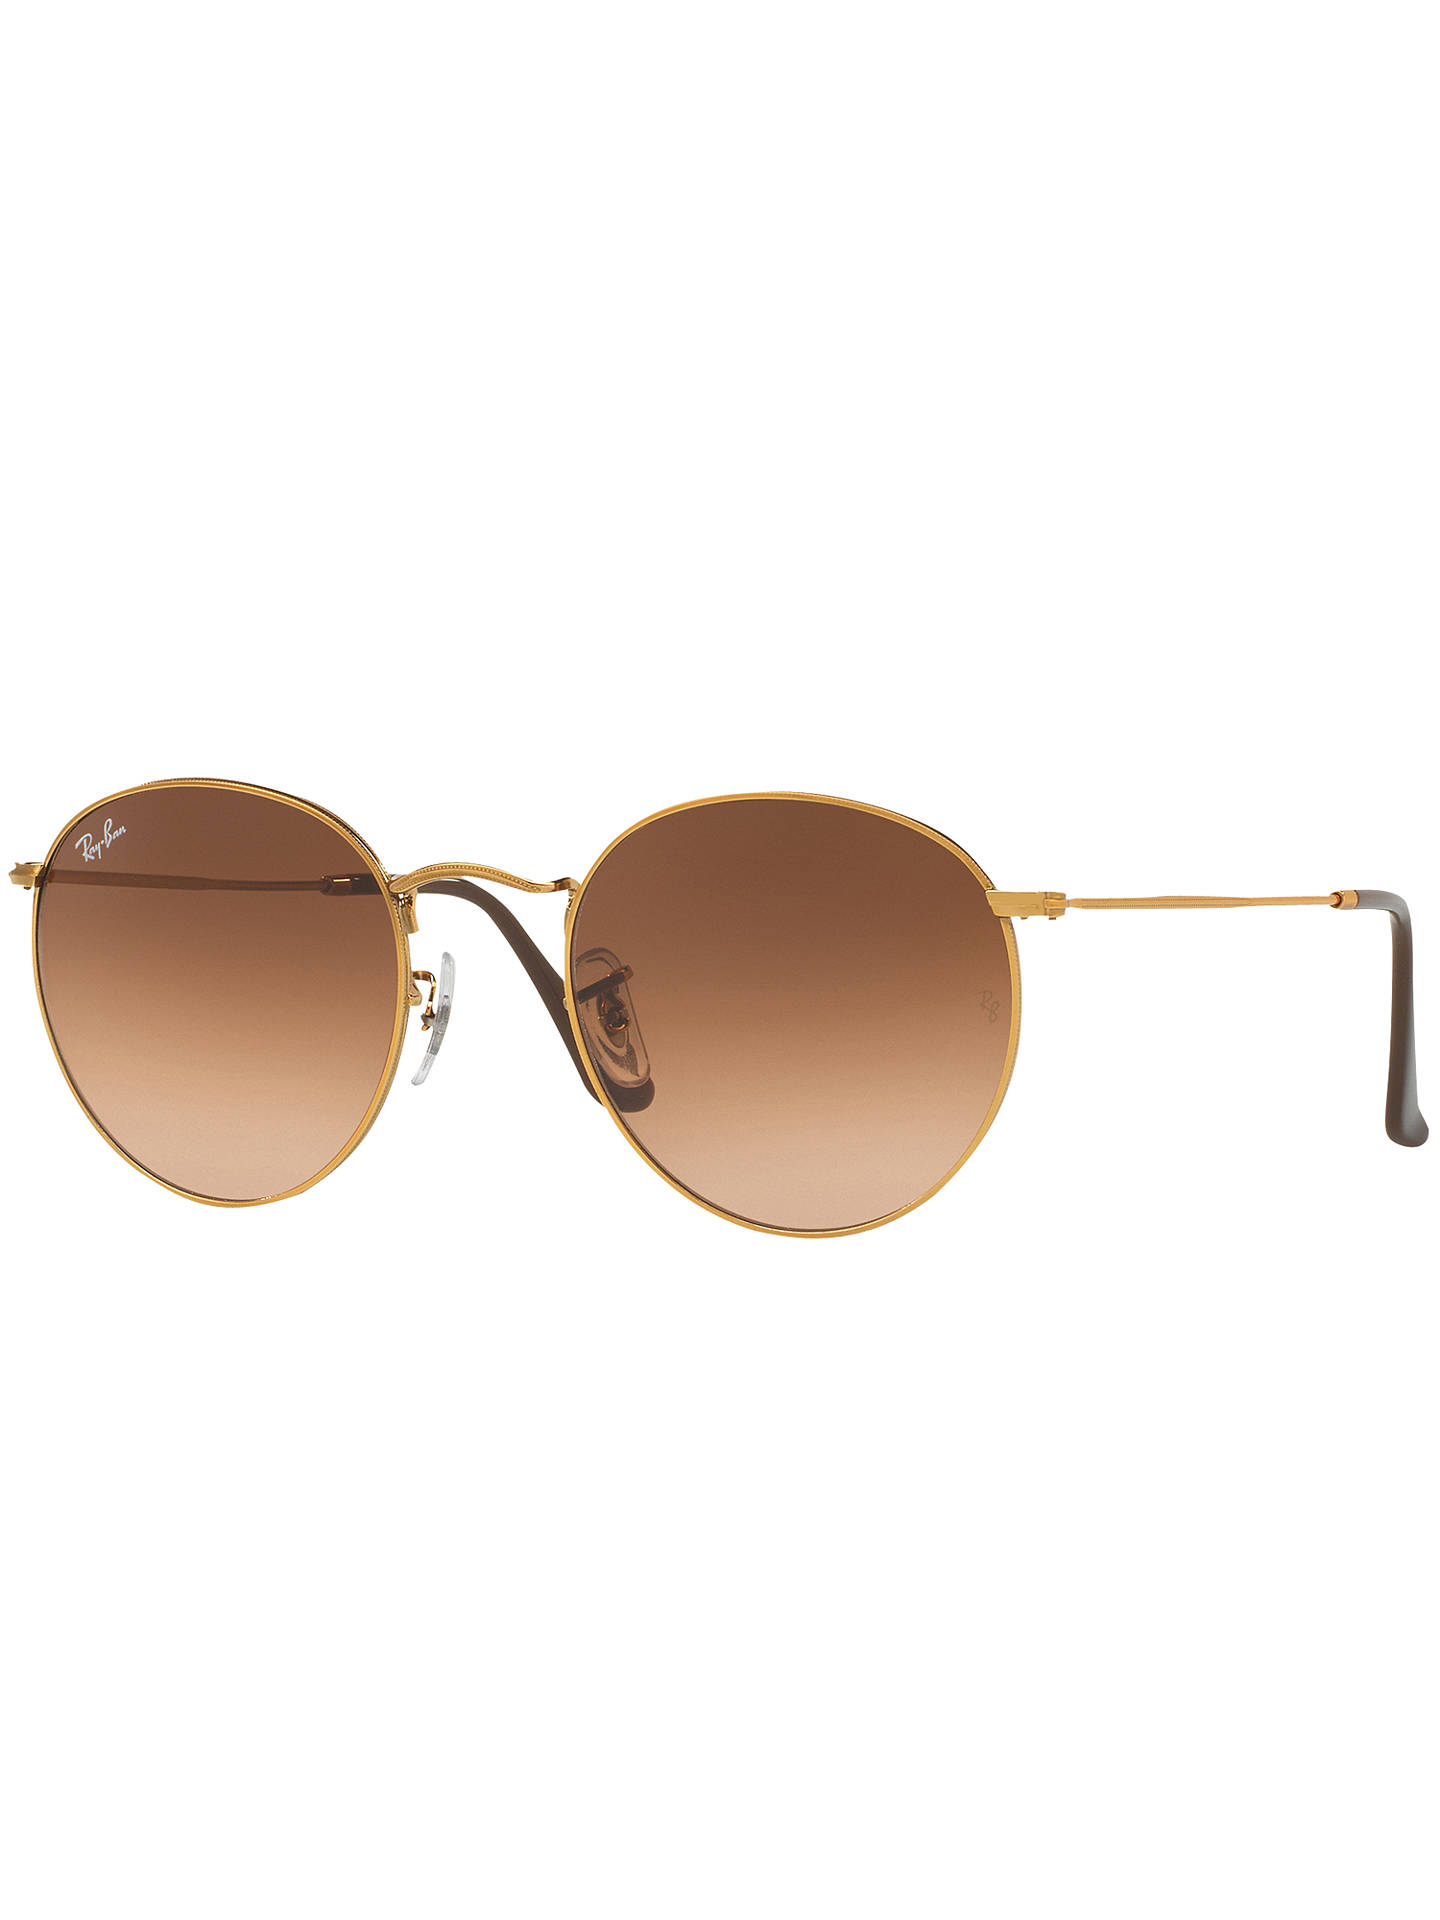 BuyRay-Ban RB3447 Round Sunglasses, Gold/Dark Pink Online at johnlewis.com